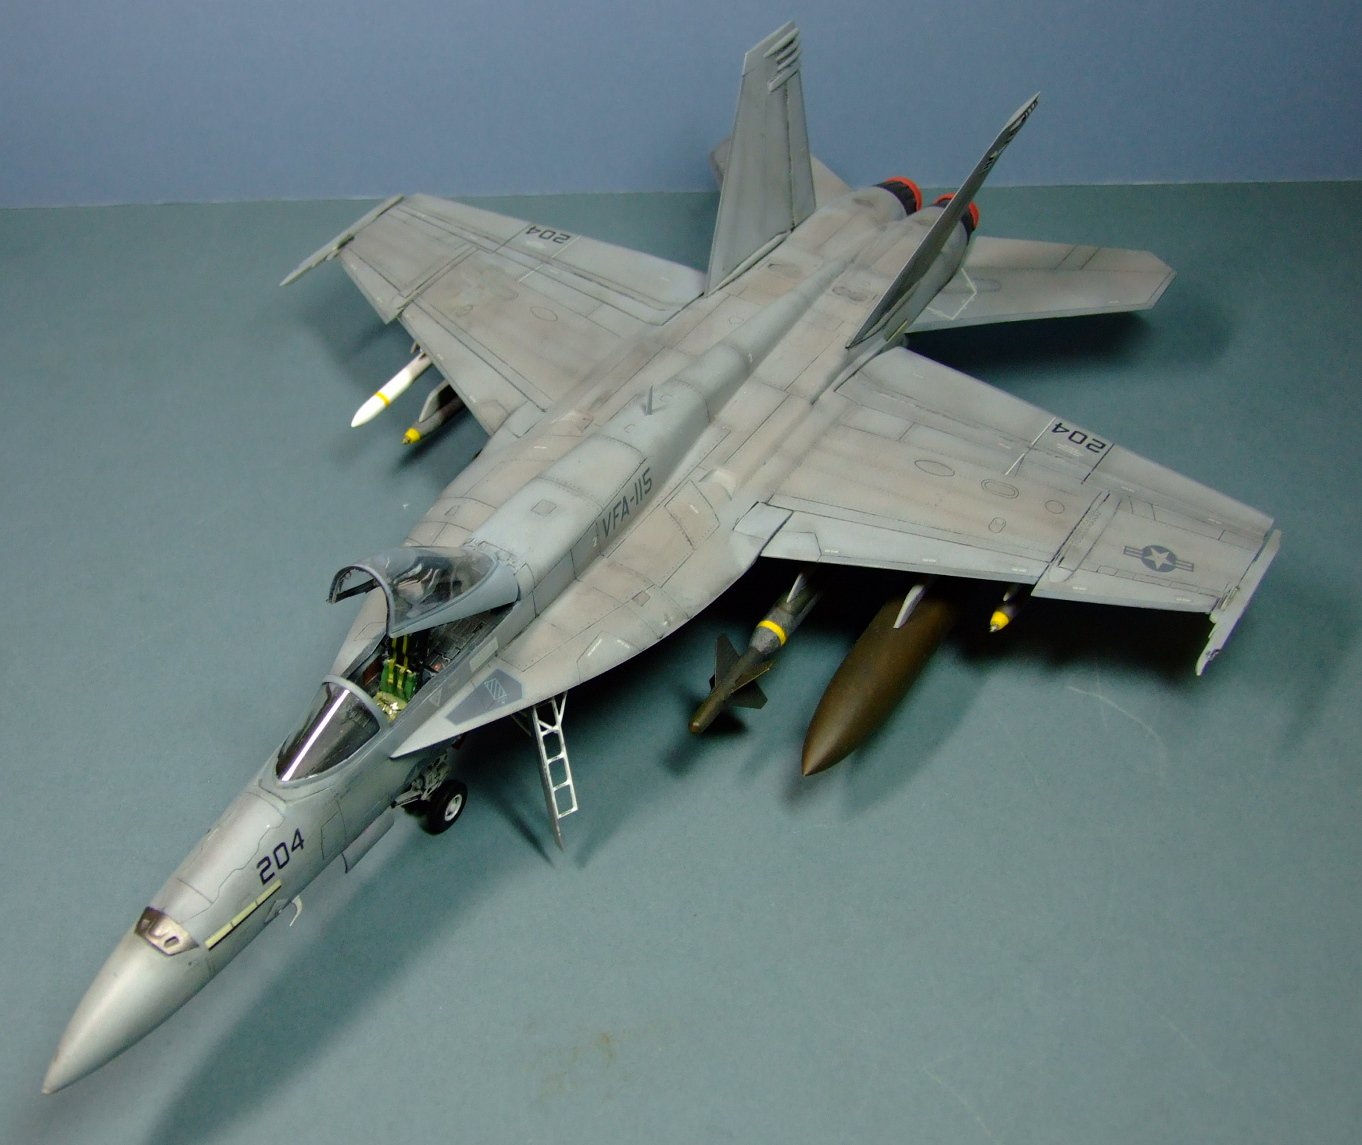 Boeing F/A-18E, Super Hornet, VFA-115, US Navy, 1:48